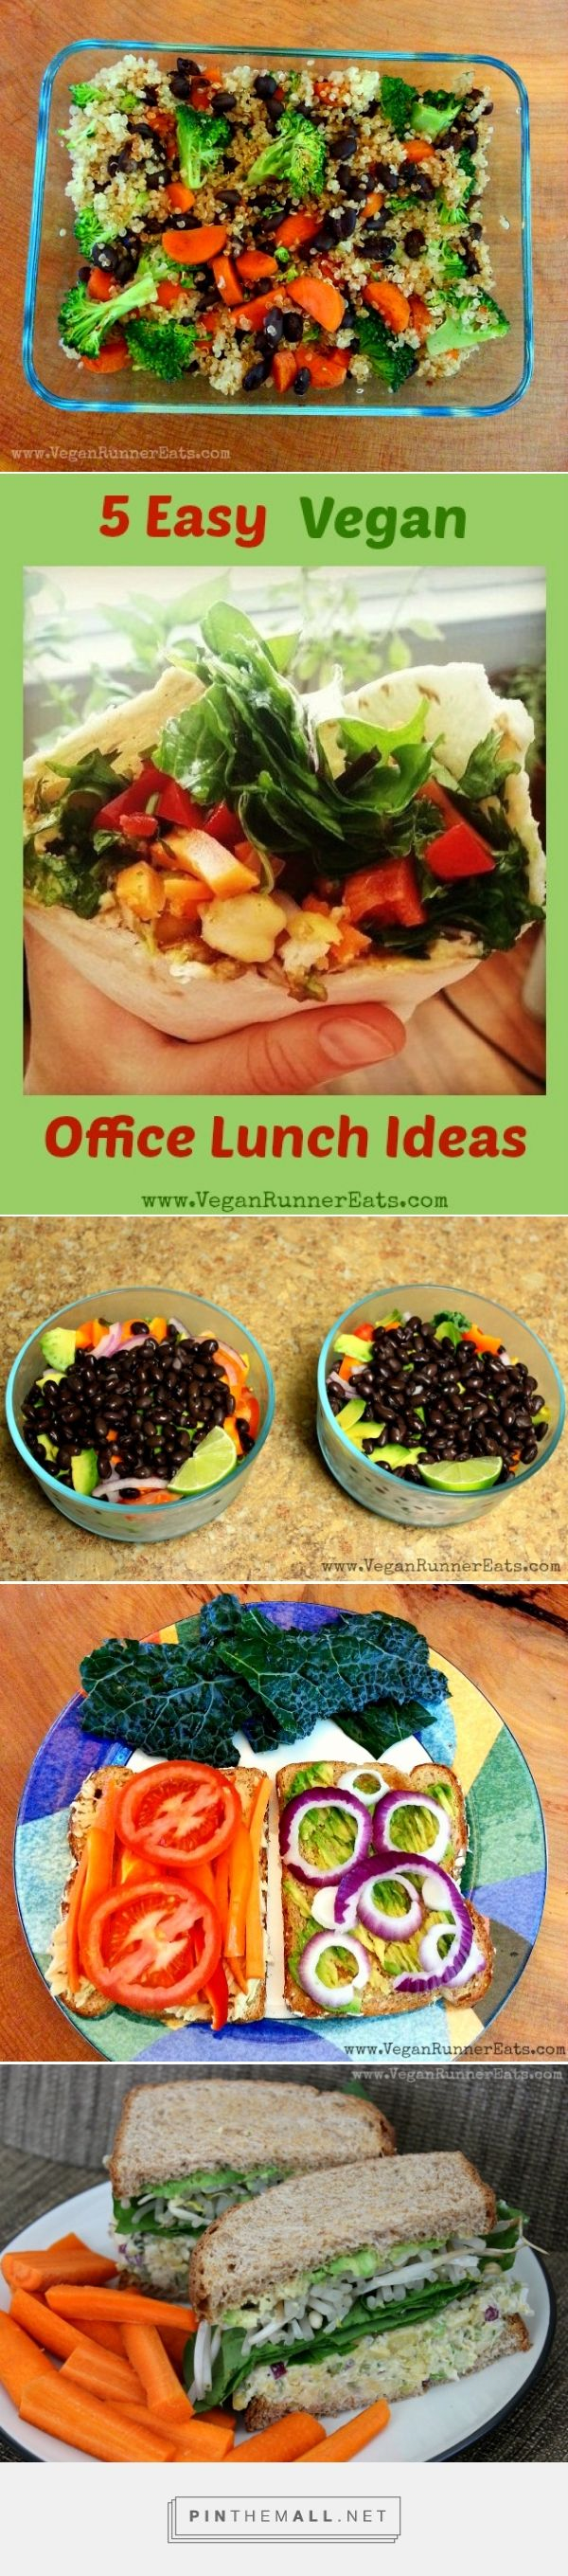 Best 25 office lunch ideas ideas on pinterest healthy lunches best 25 office lunch ideas ideas on pinterest healthy lunches healthy packed lunches and easy work lunch forumfinder Choice Image